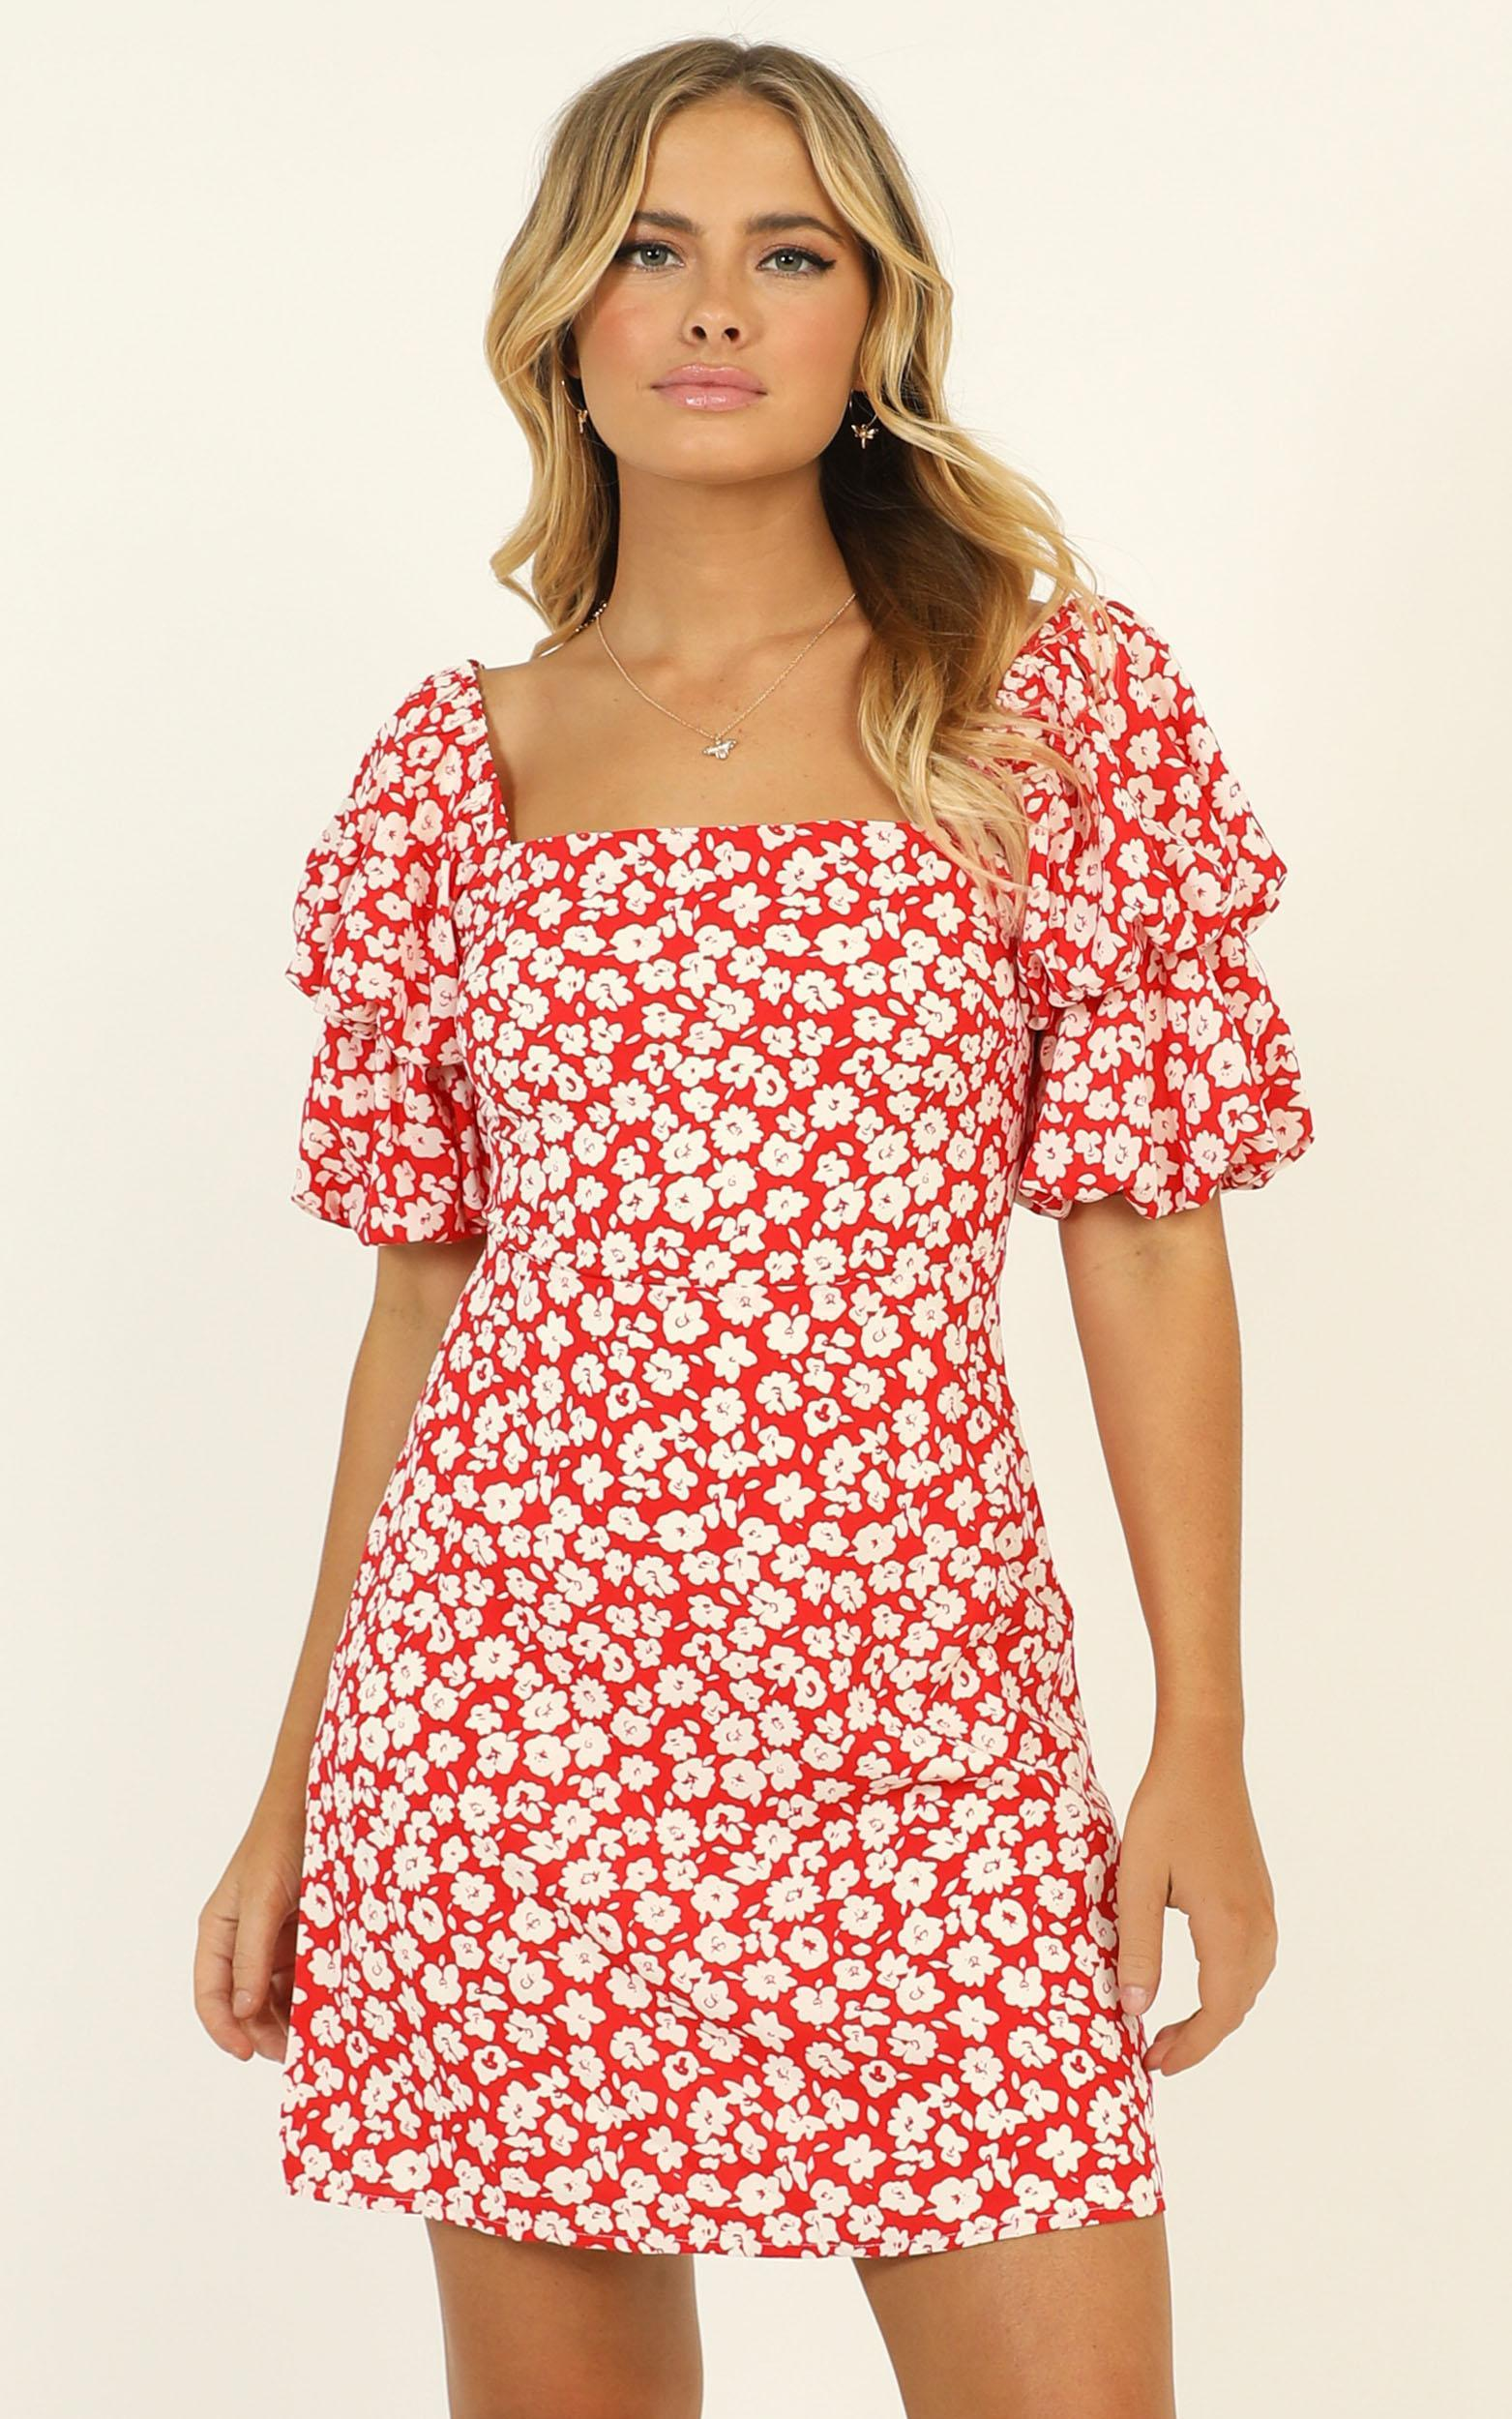 Parisian Spring dress in red floral - 12 (L), Red, hi-res image number null